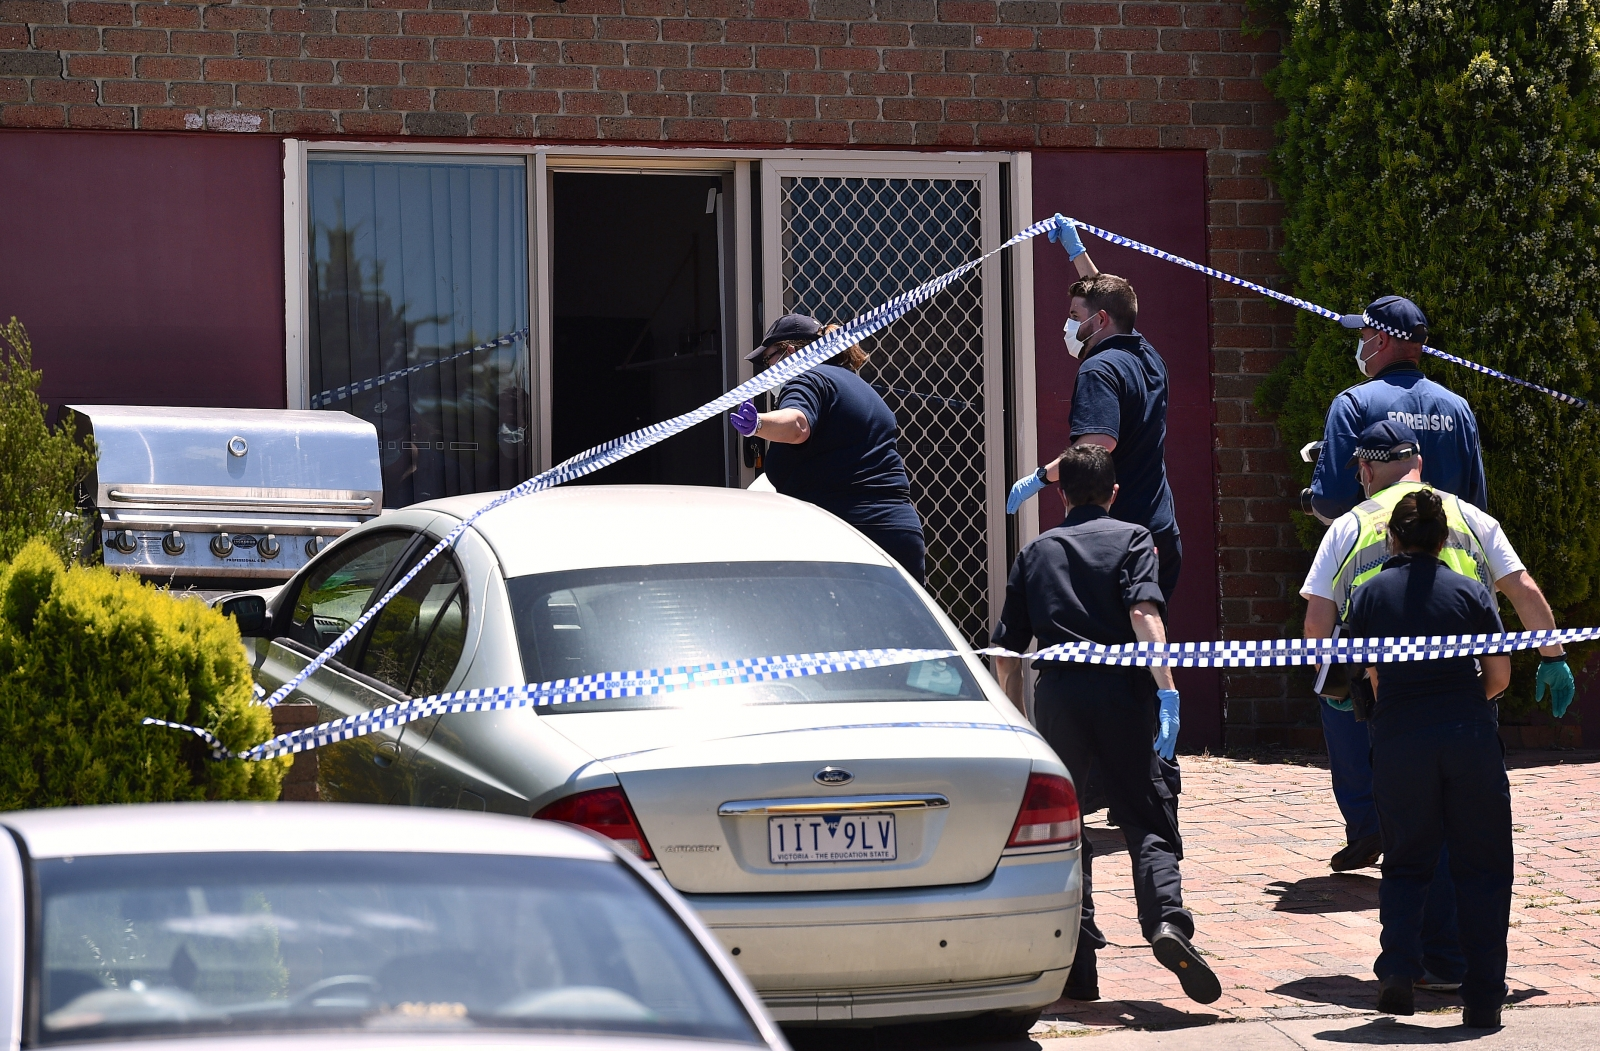 Australia foiled Christmas day attack